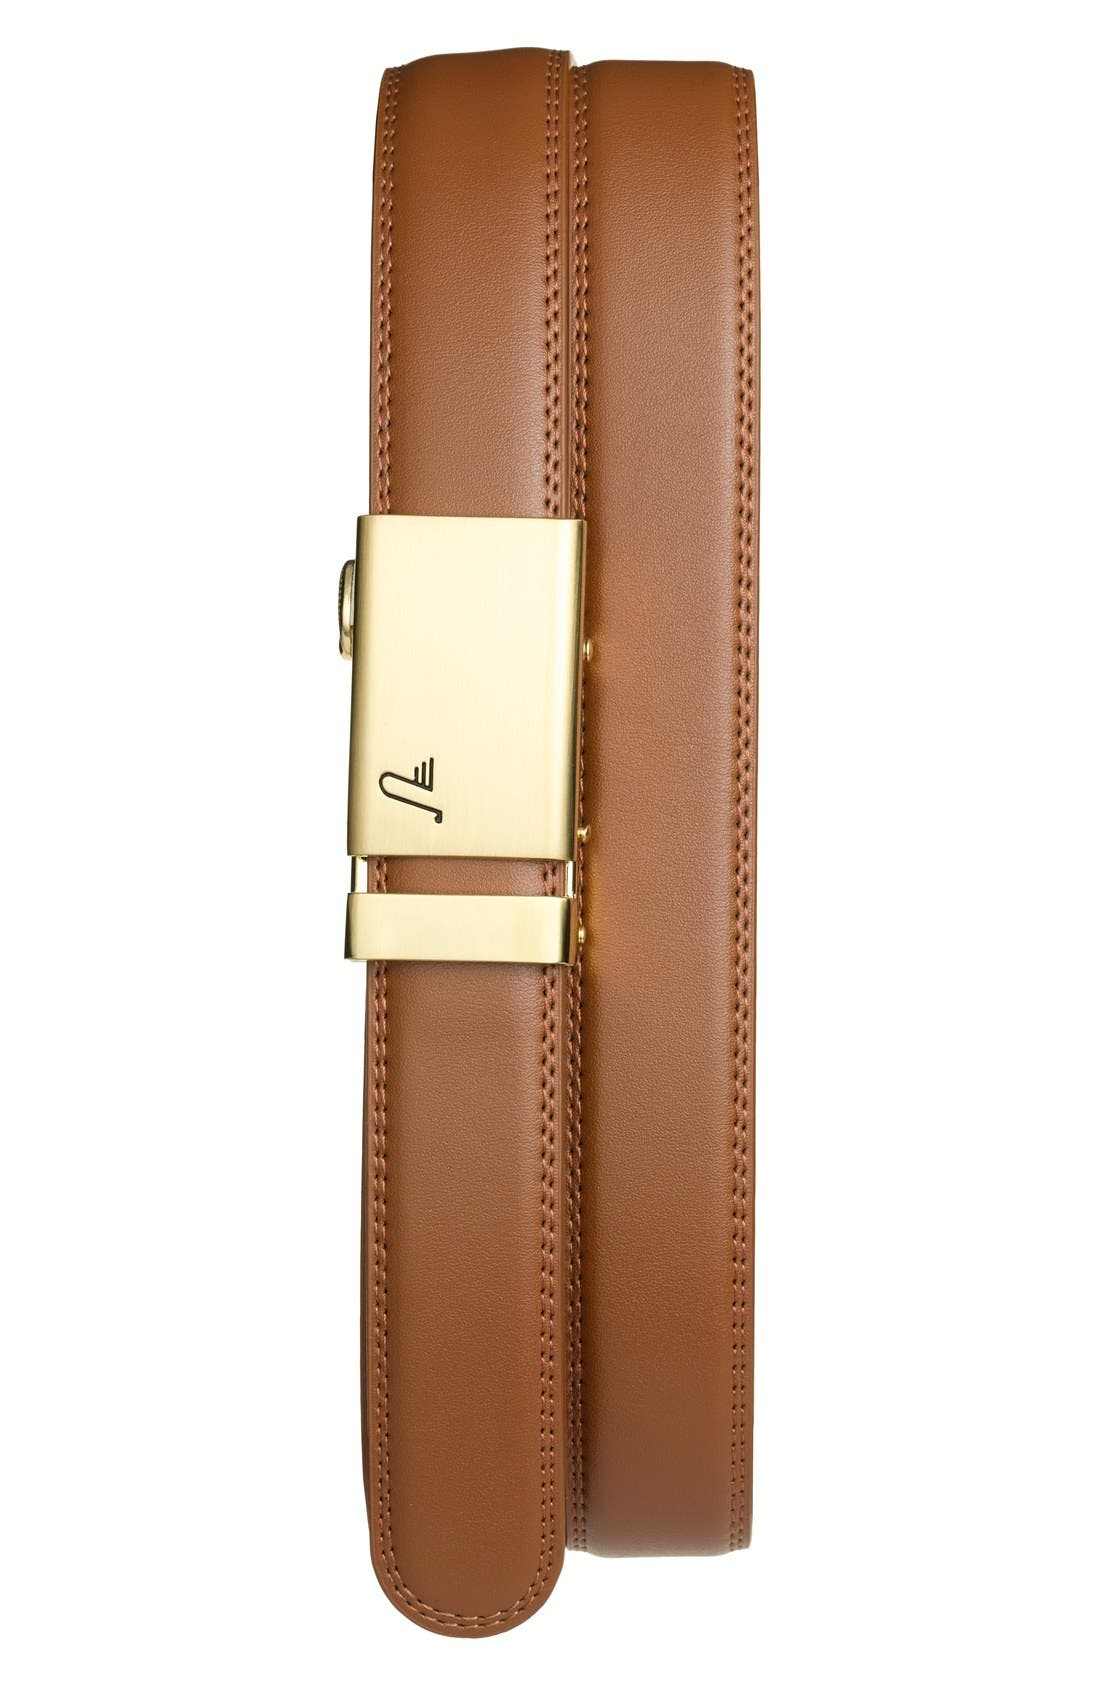 Mission Belt 'TwentyFour' Leather Belt